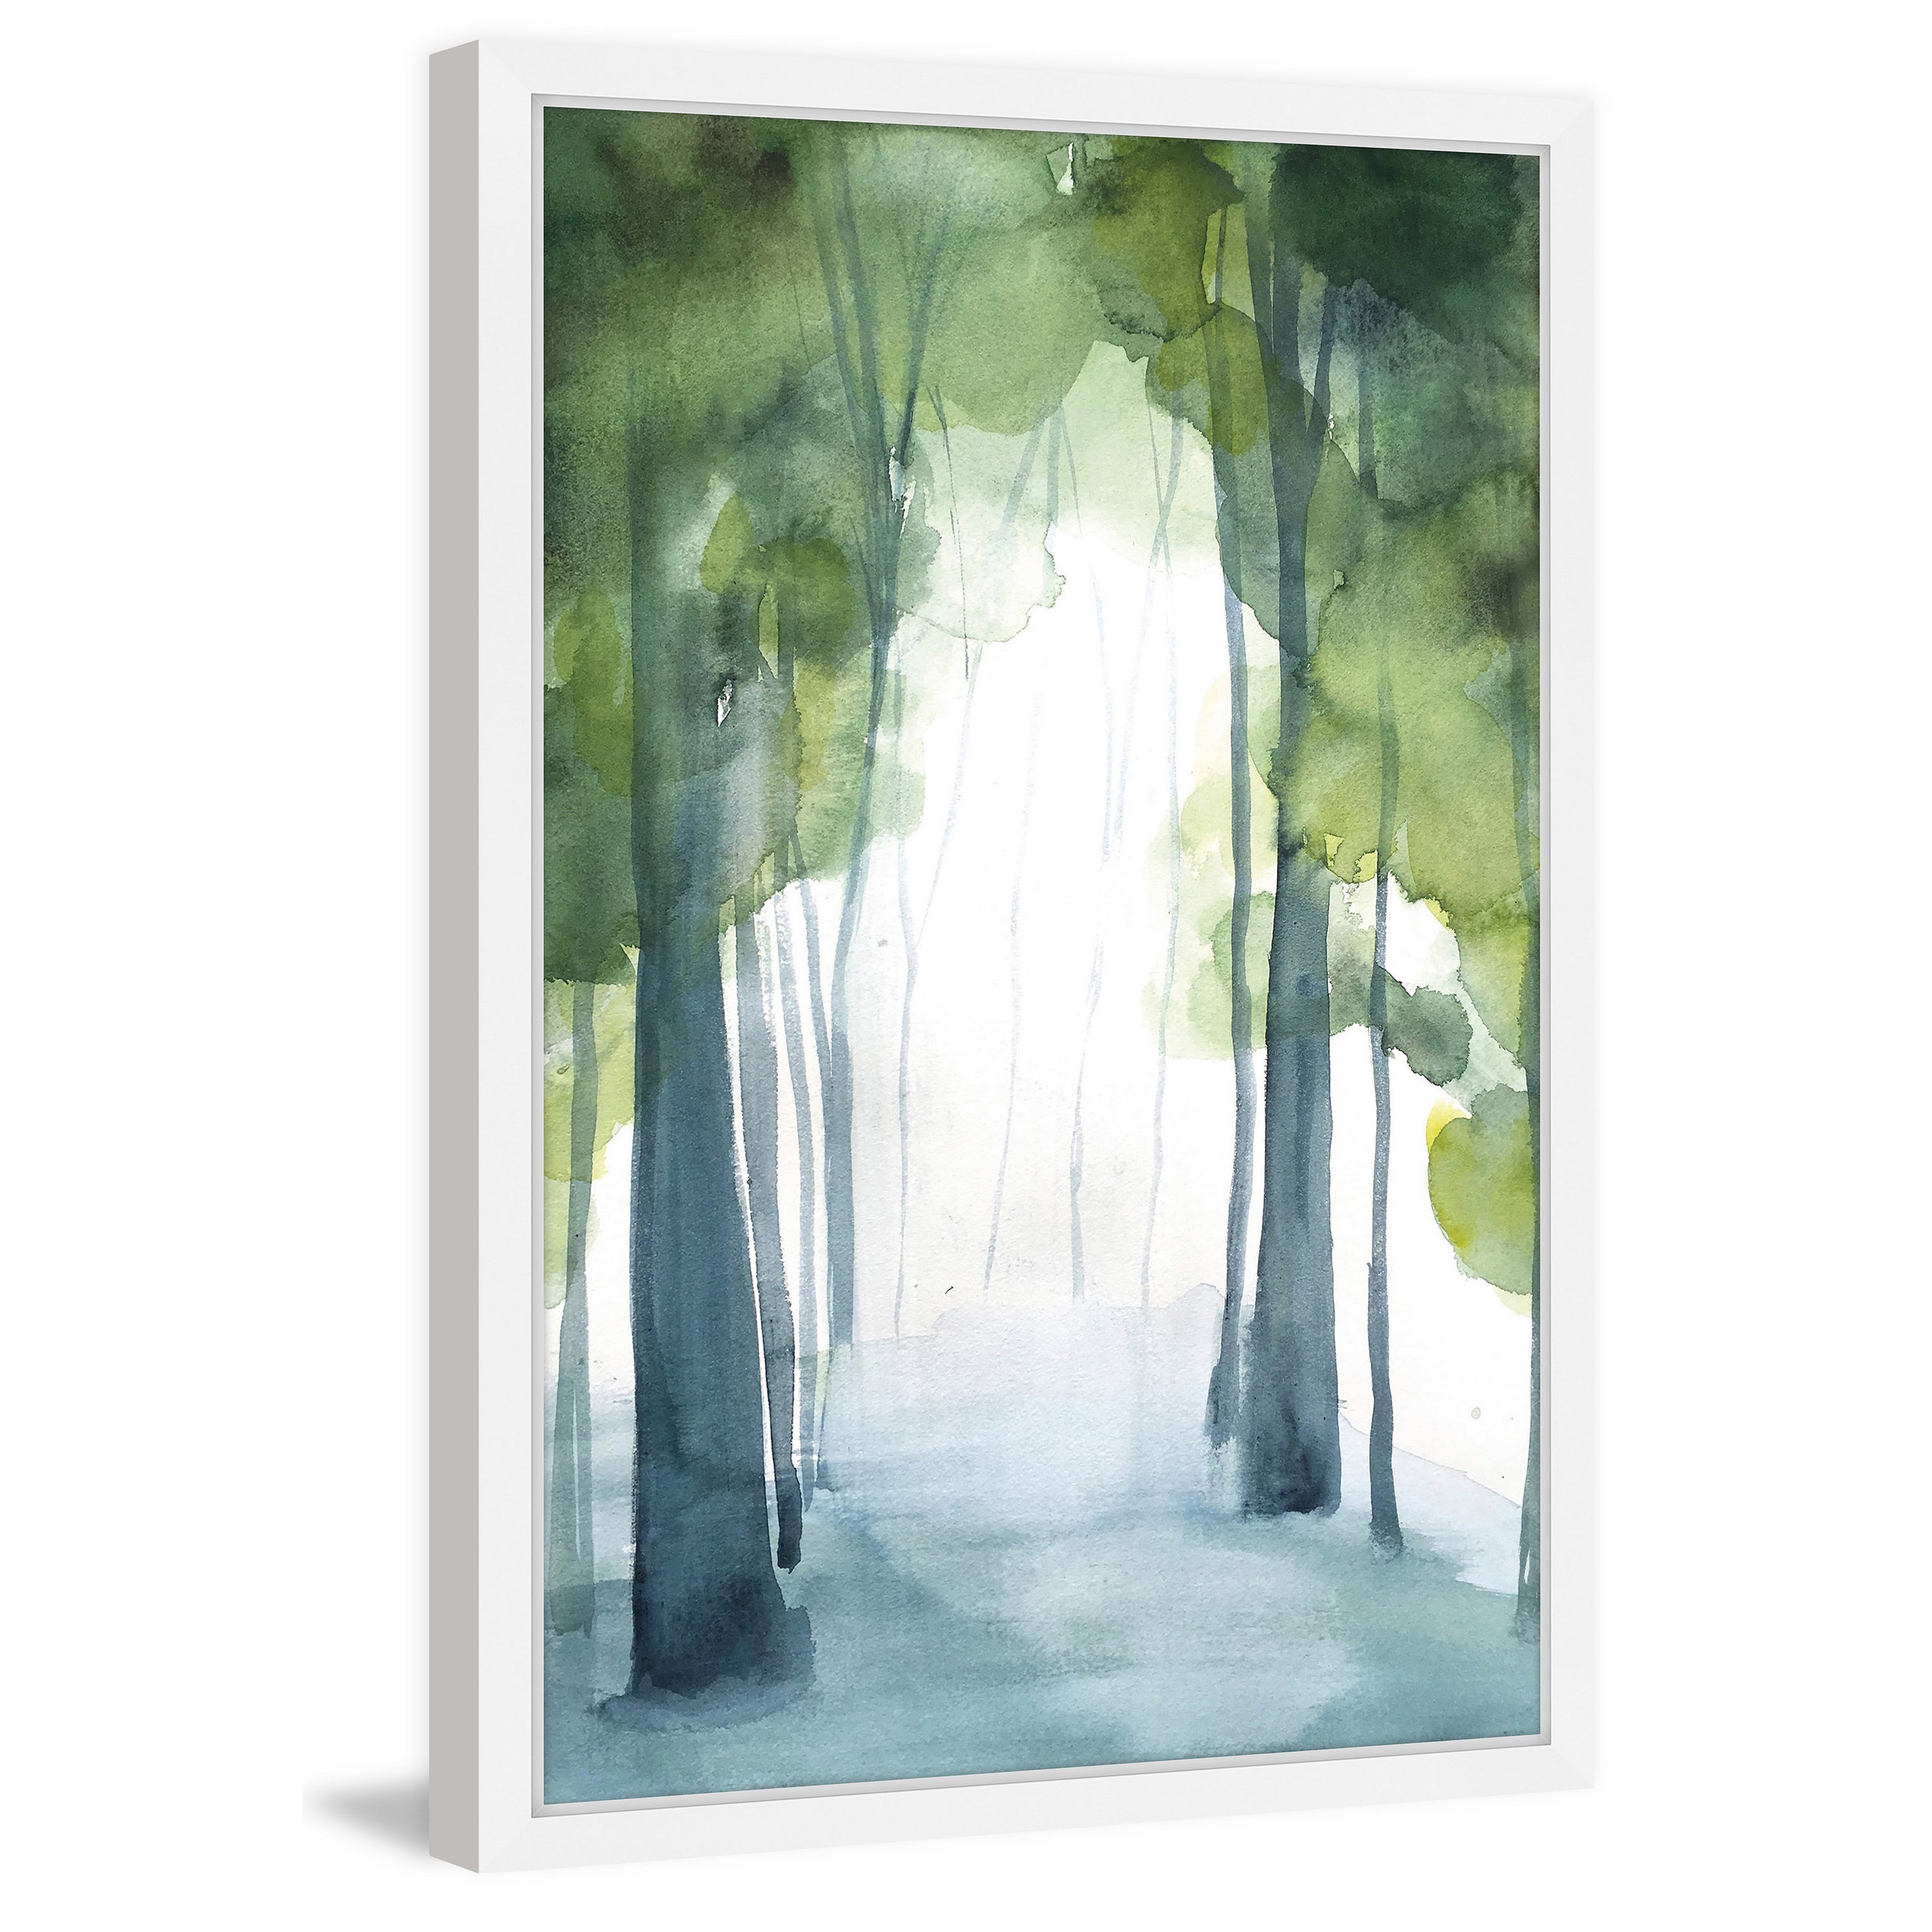 Clay Alder Home 'Grove' by Christine Lindstrom Framed Painting Print